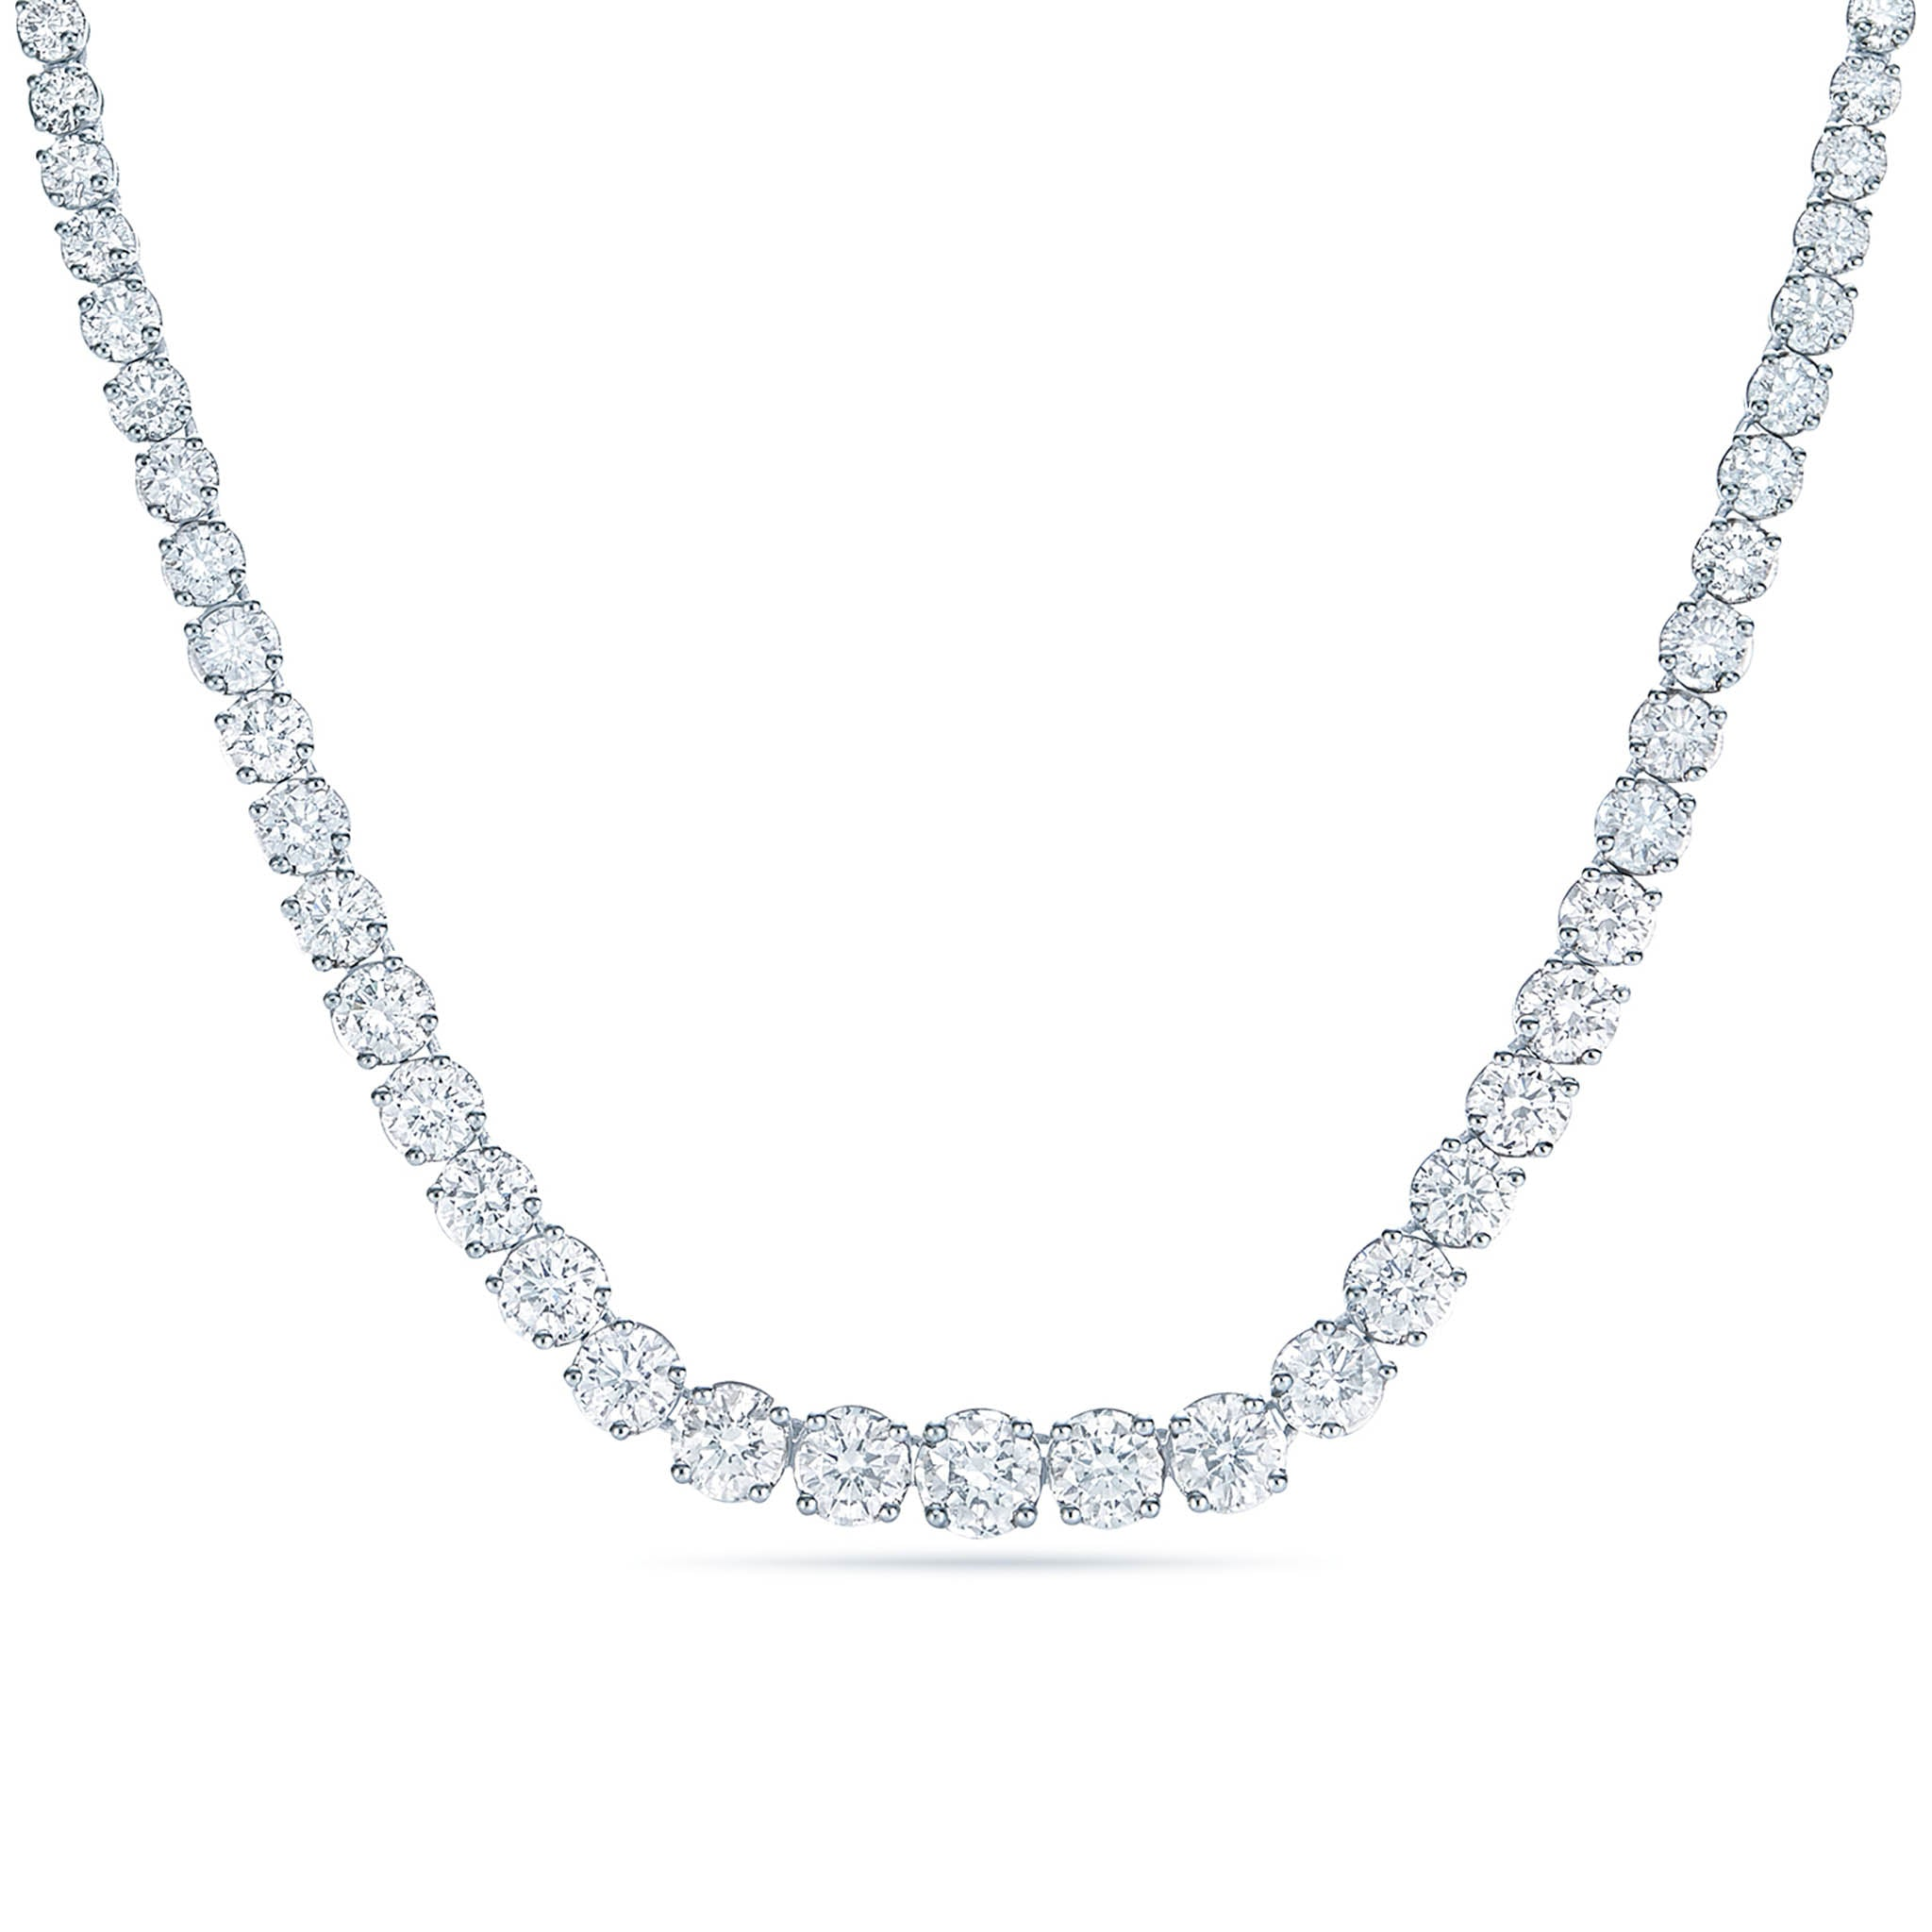 18k White Gold and Diamond Partial Riviera Necklace